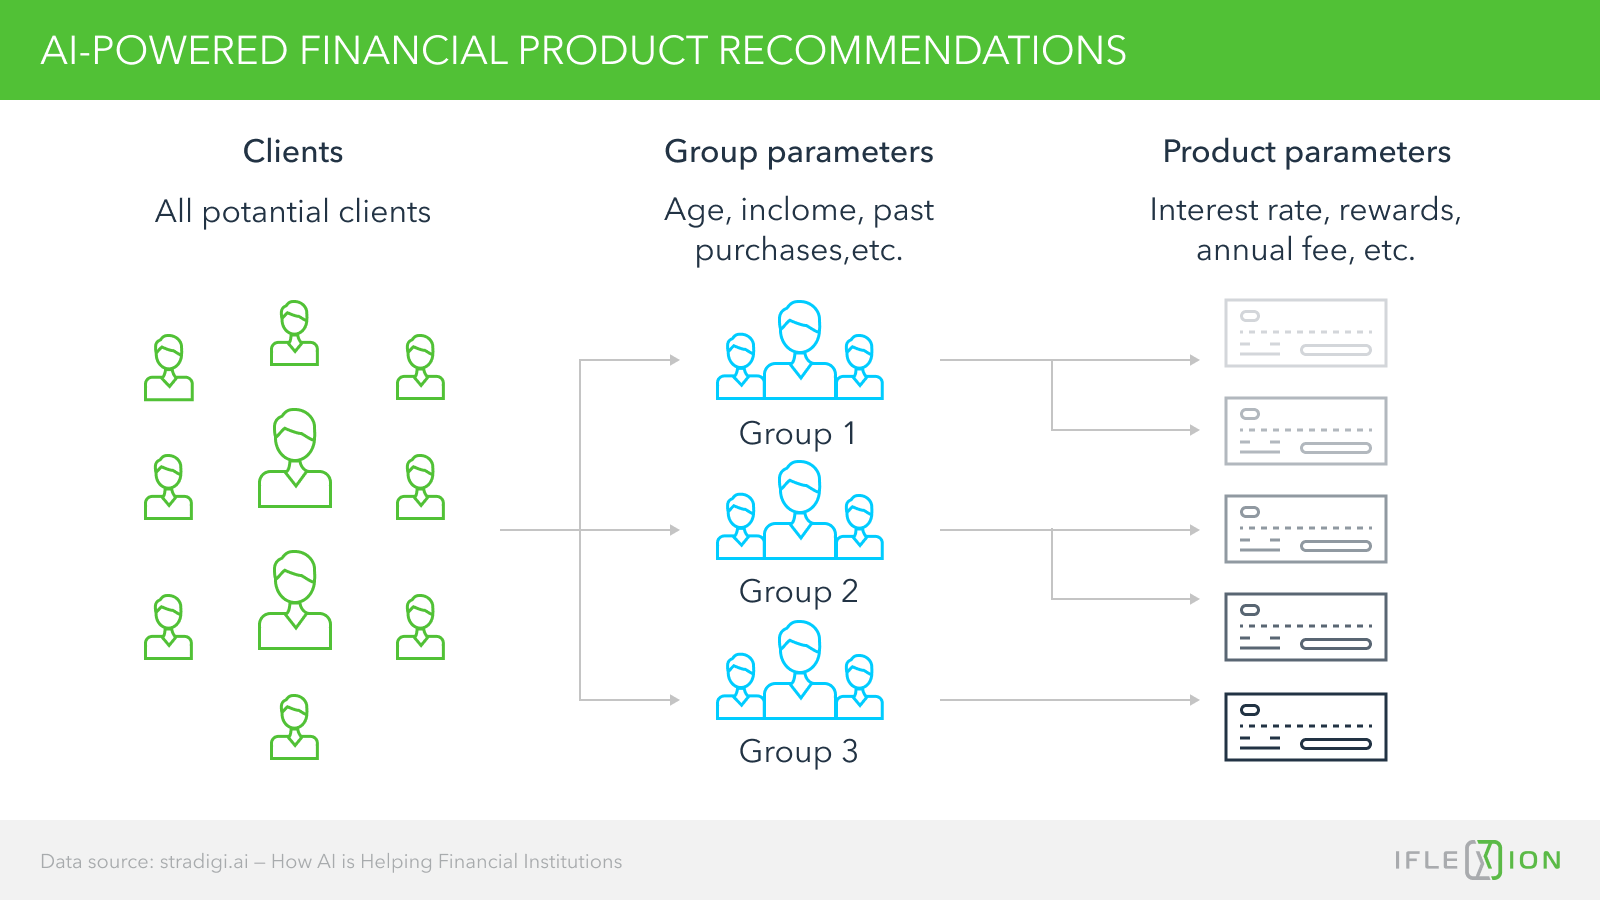 AI-powered financial product recommendations